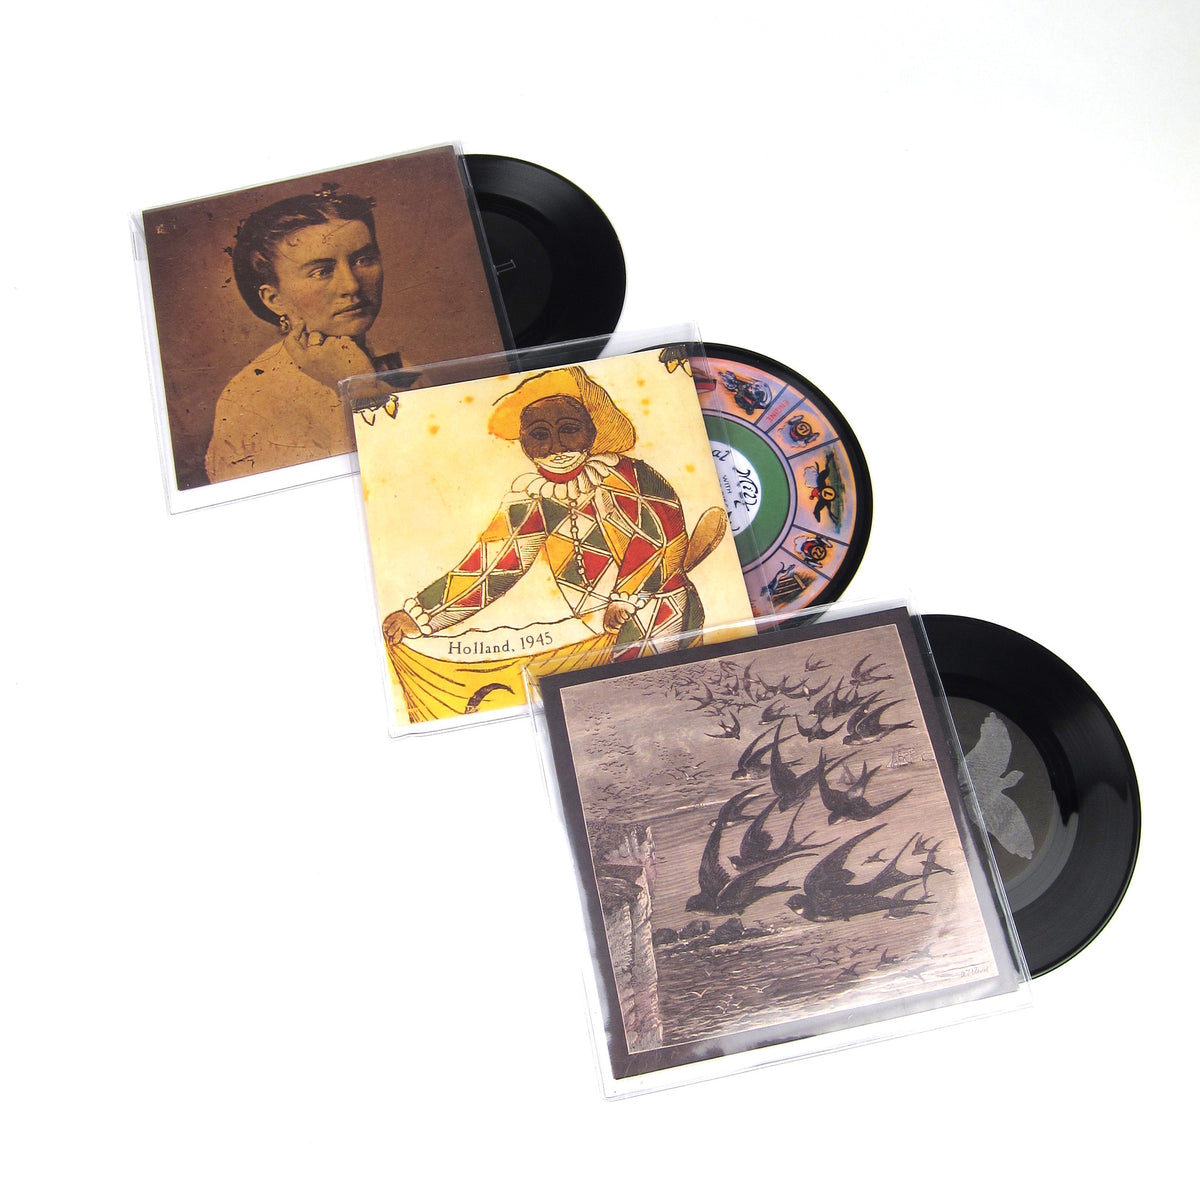 Neutral Milk Hotel: NMH Neutral Milk Hotel Vinyl Boxset